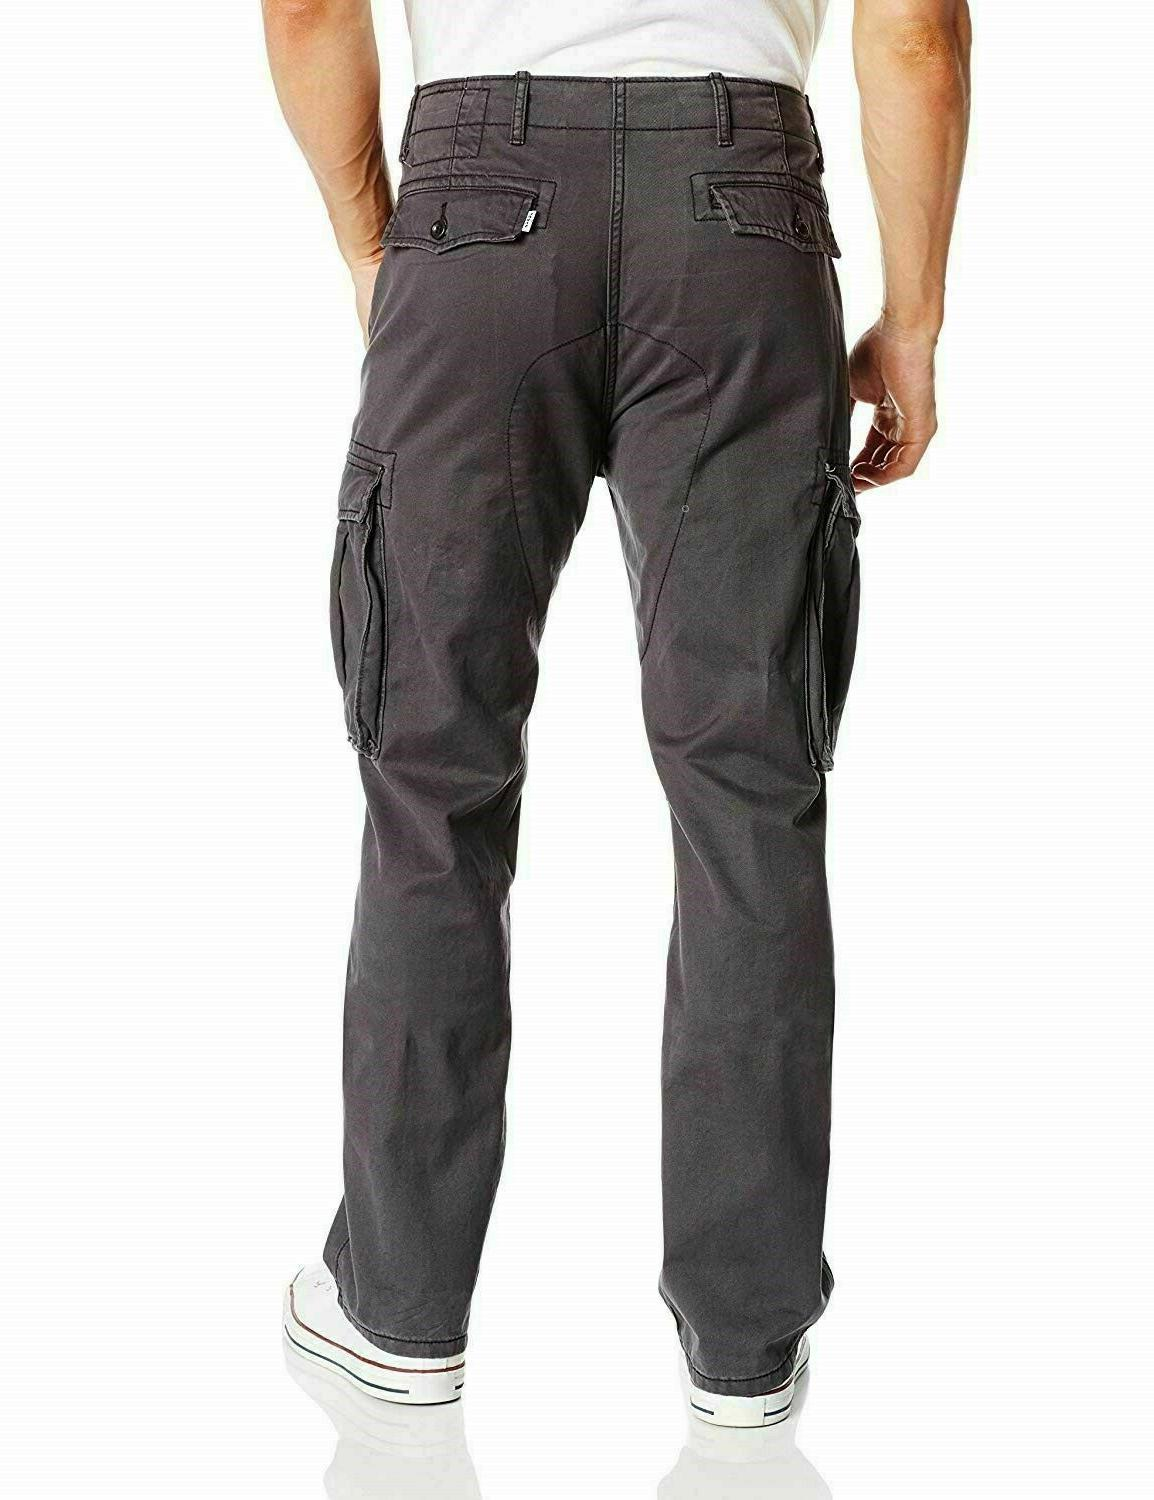 Levis Cargo Charcoal Gray Levi's New Tags